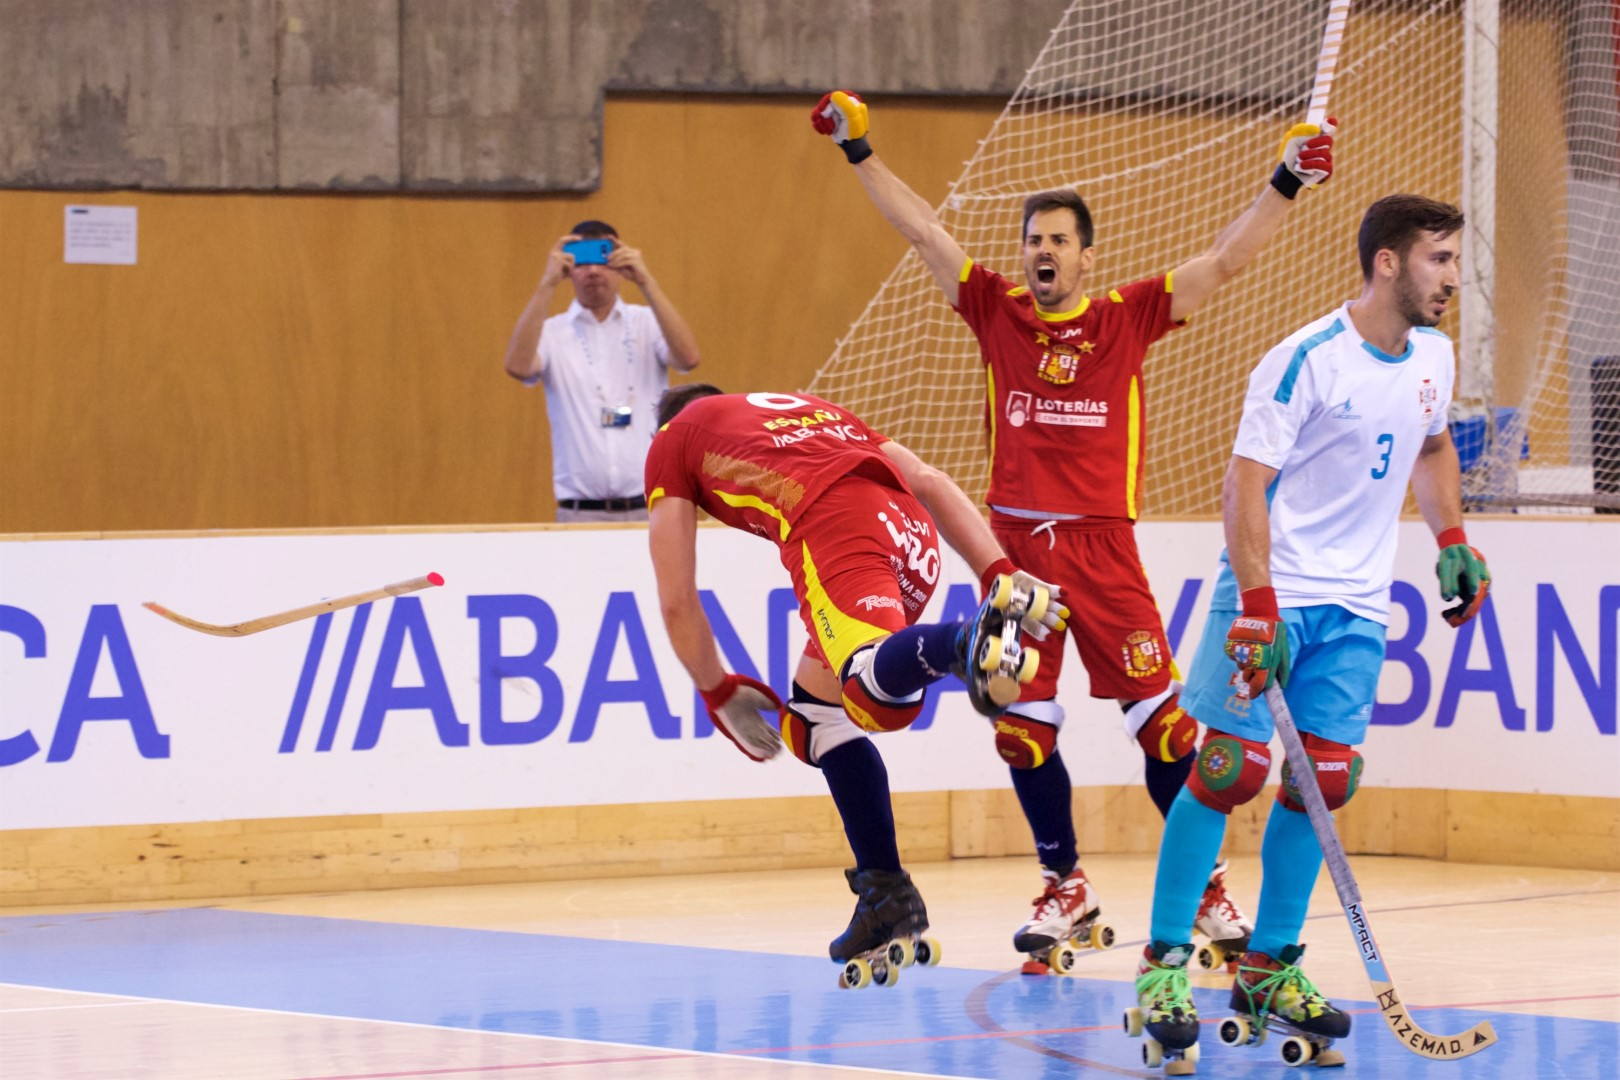 PHOTOS – 22/07/2018 - EUROHOCKEY CORUNA 2018 - Match #40 - Spain x Portugal – Photos by Marzia Cattini